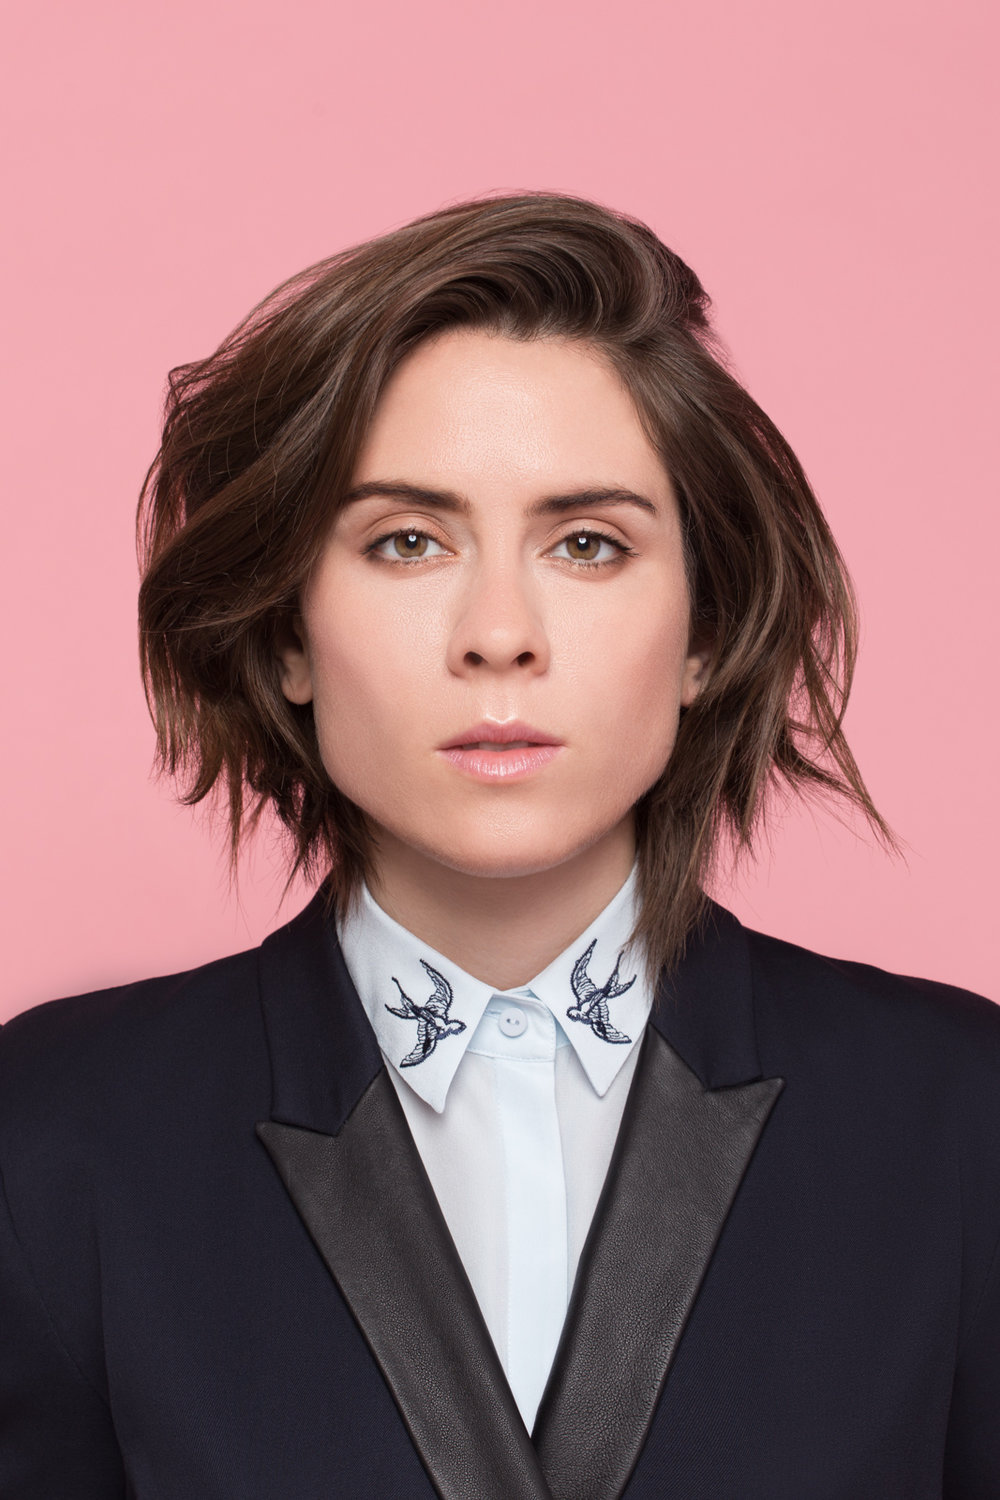 Kelly Jacob photographe tegan and sara cover-5109.jpg